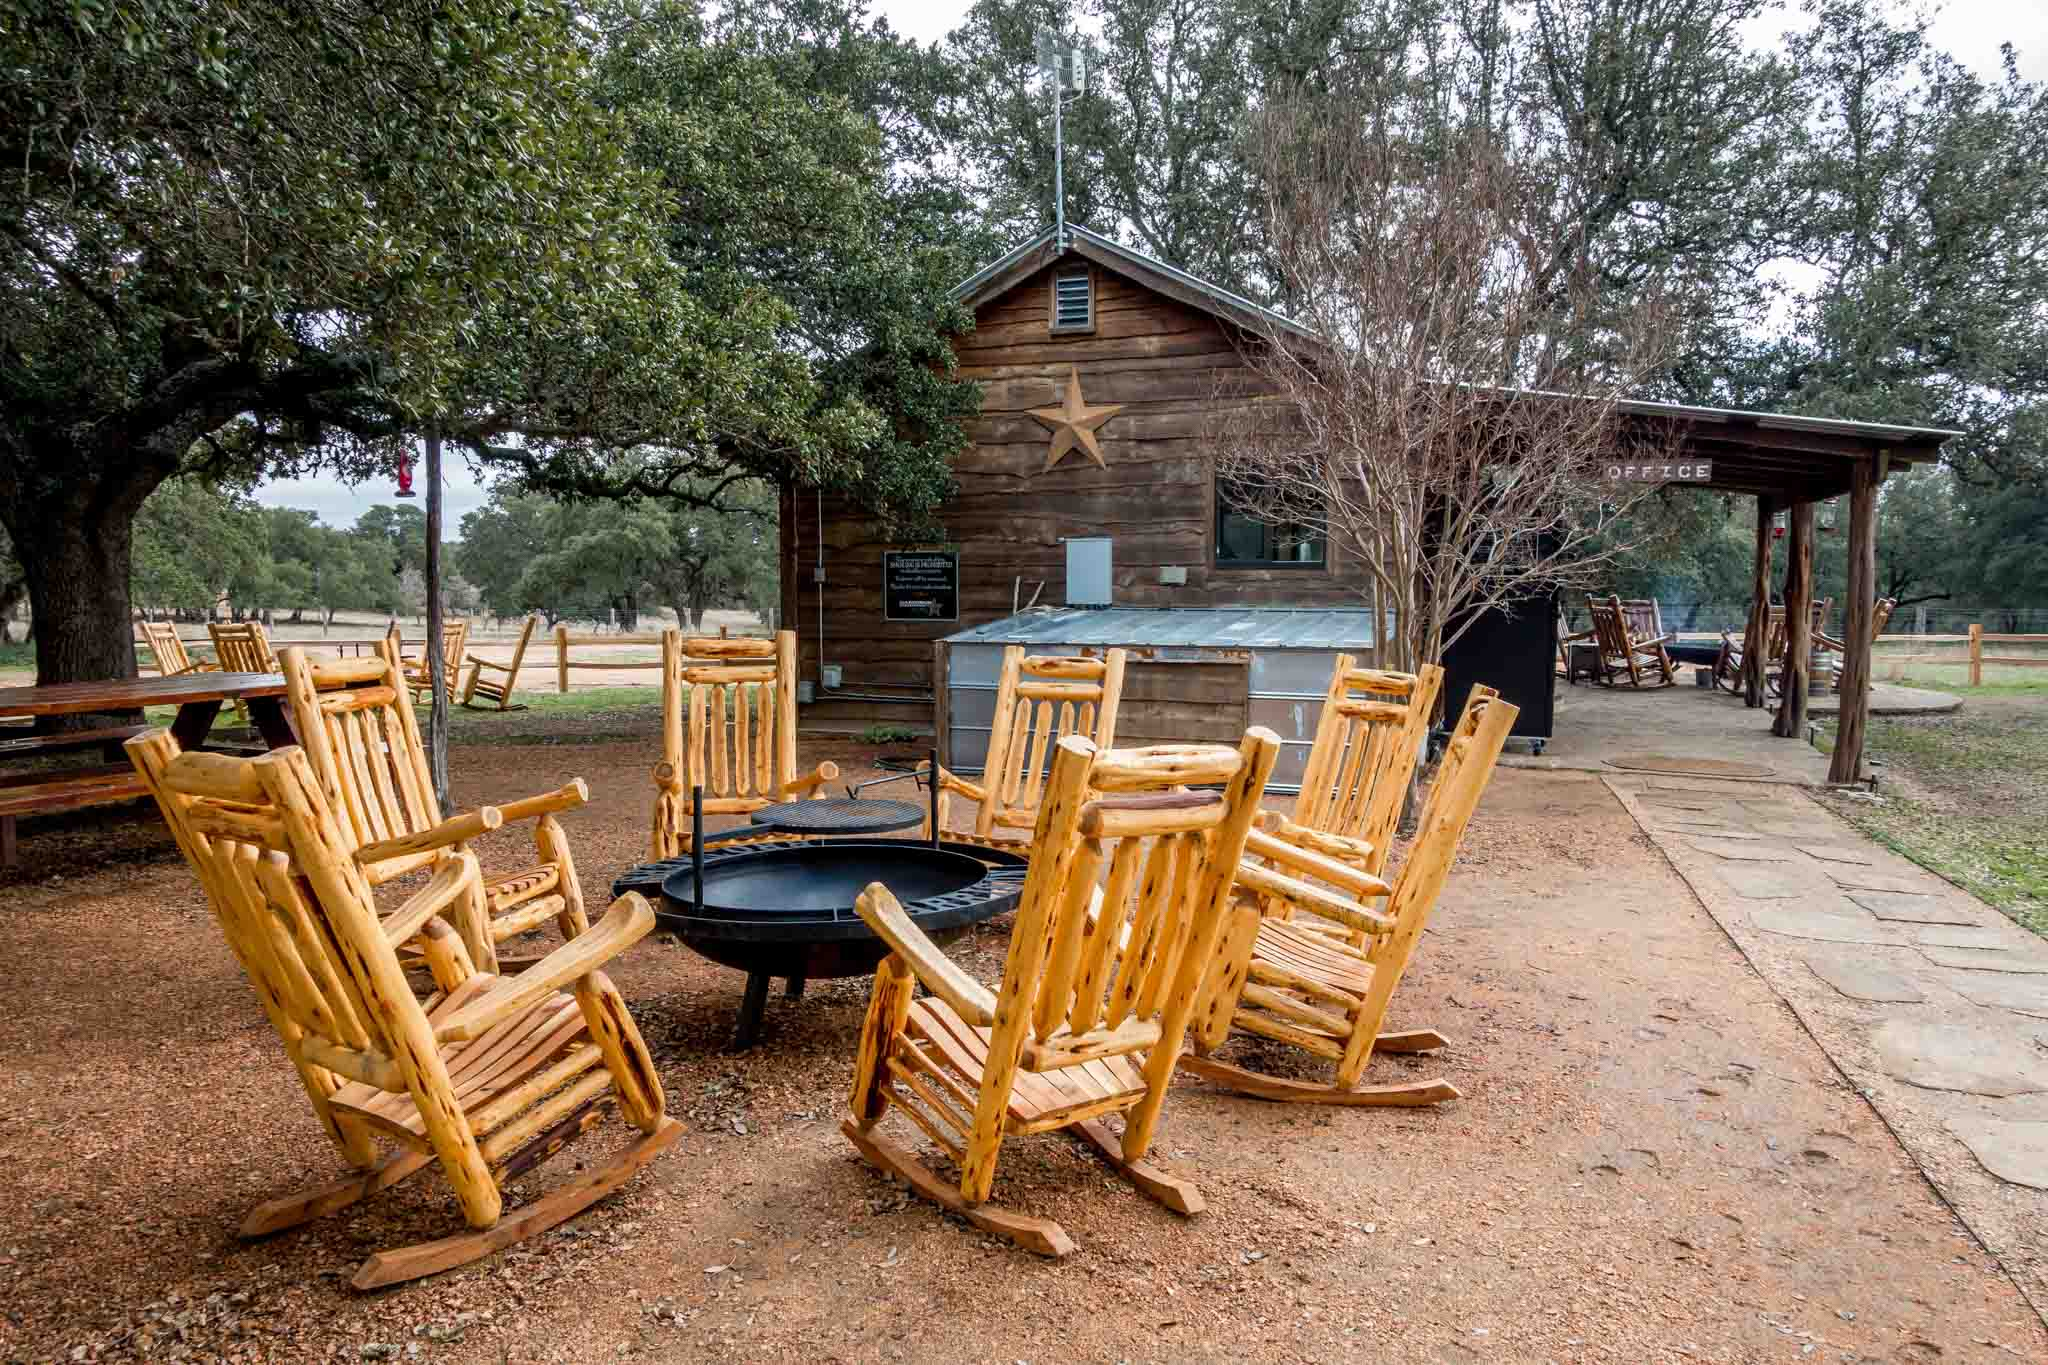 Rocking chairs and fire pits outside builing at Garrison Brothers Distillery